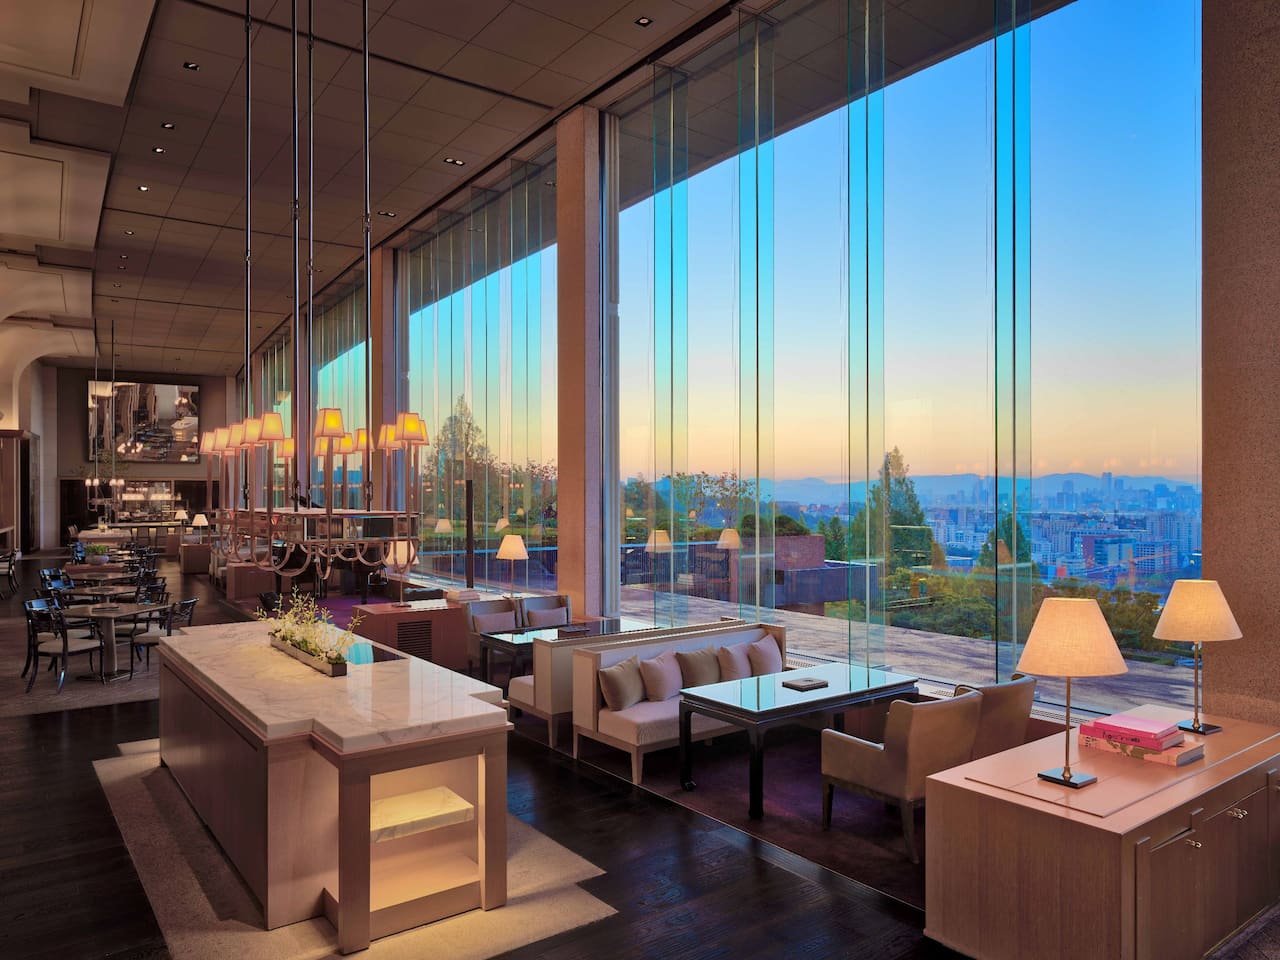 Arts, music and scenic views of the city at the Gallery Lobby Lounge